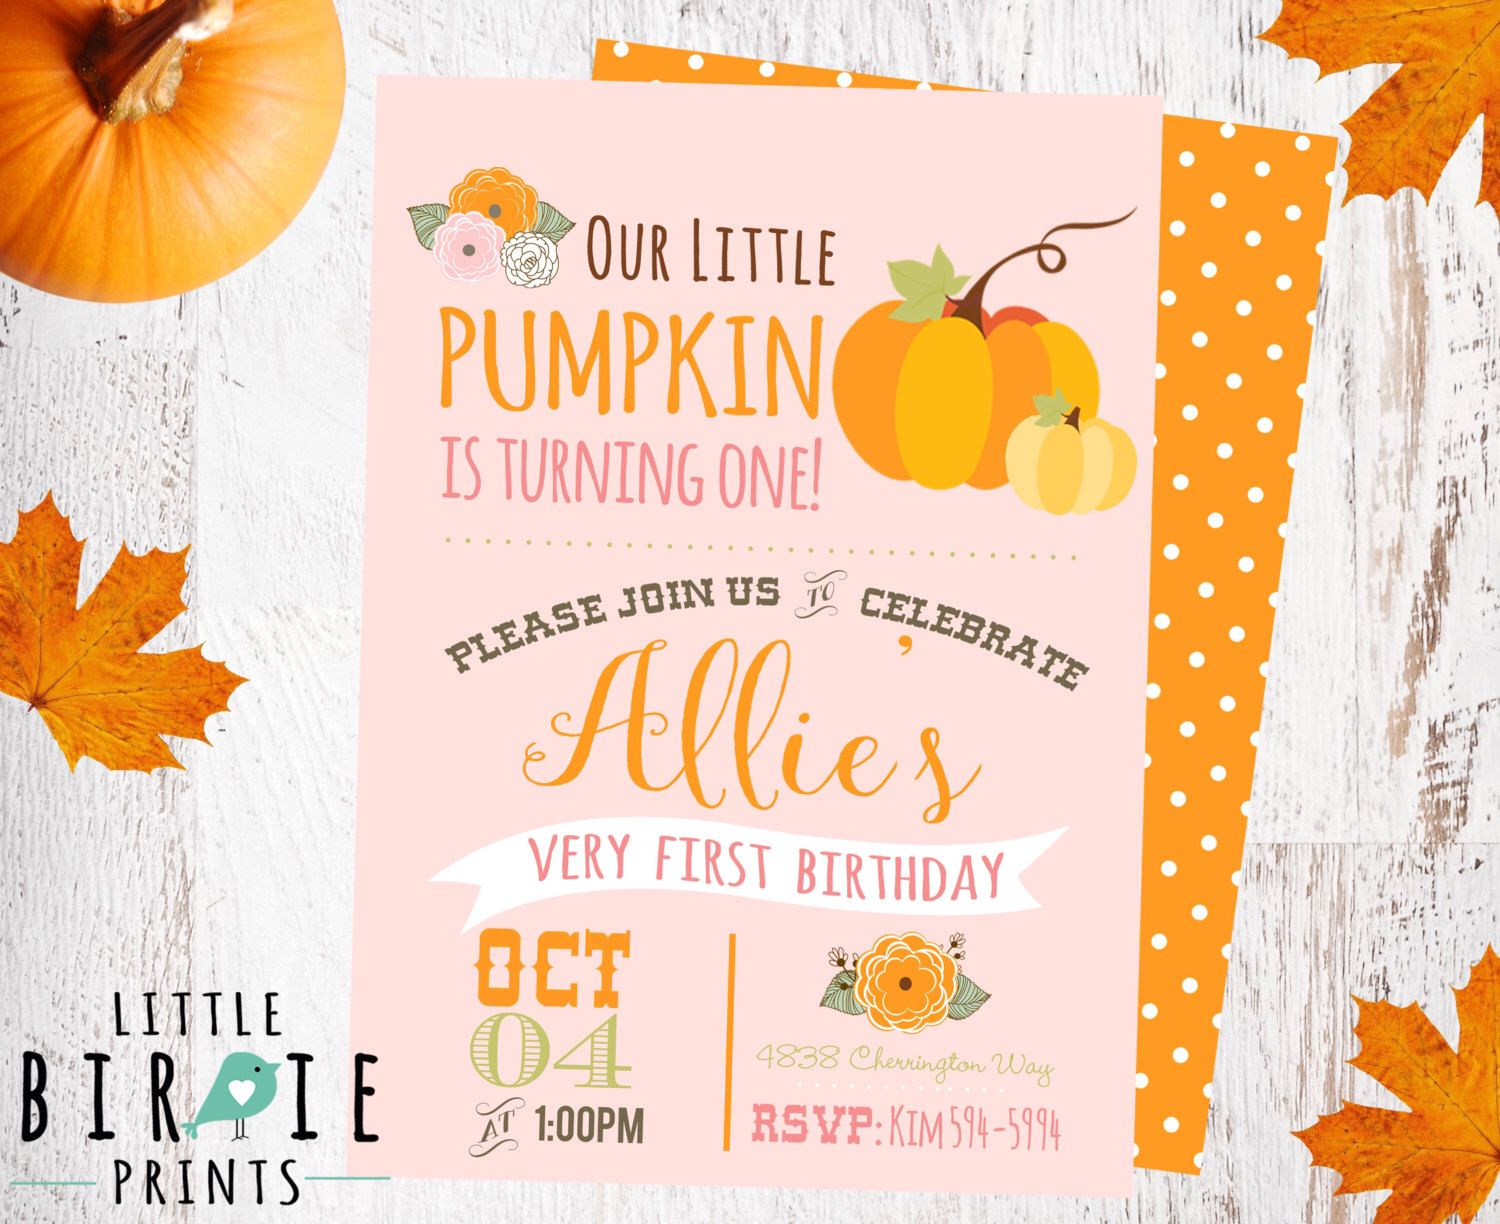 Pin by miranda doub on raelyn 1 year pinterest flower girl pumpkin first birthday invitation our little pumpkin is turning one invitation vintage pink pumpkin flowers girl invitation pumpkin party filmwisefo Image collections